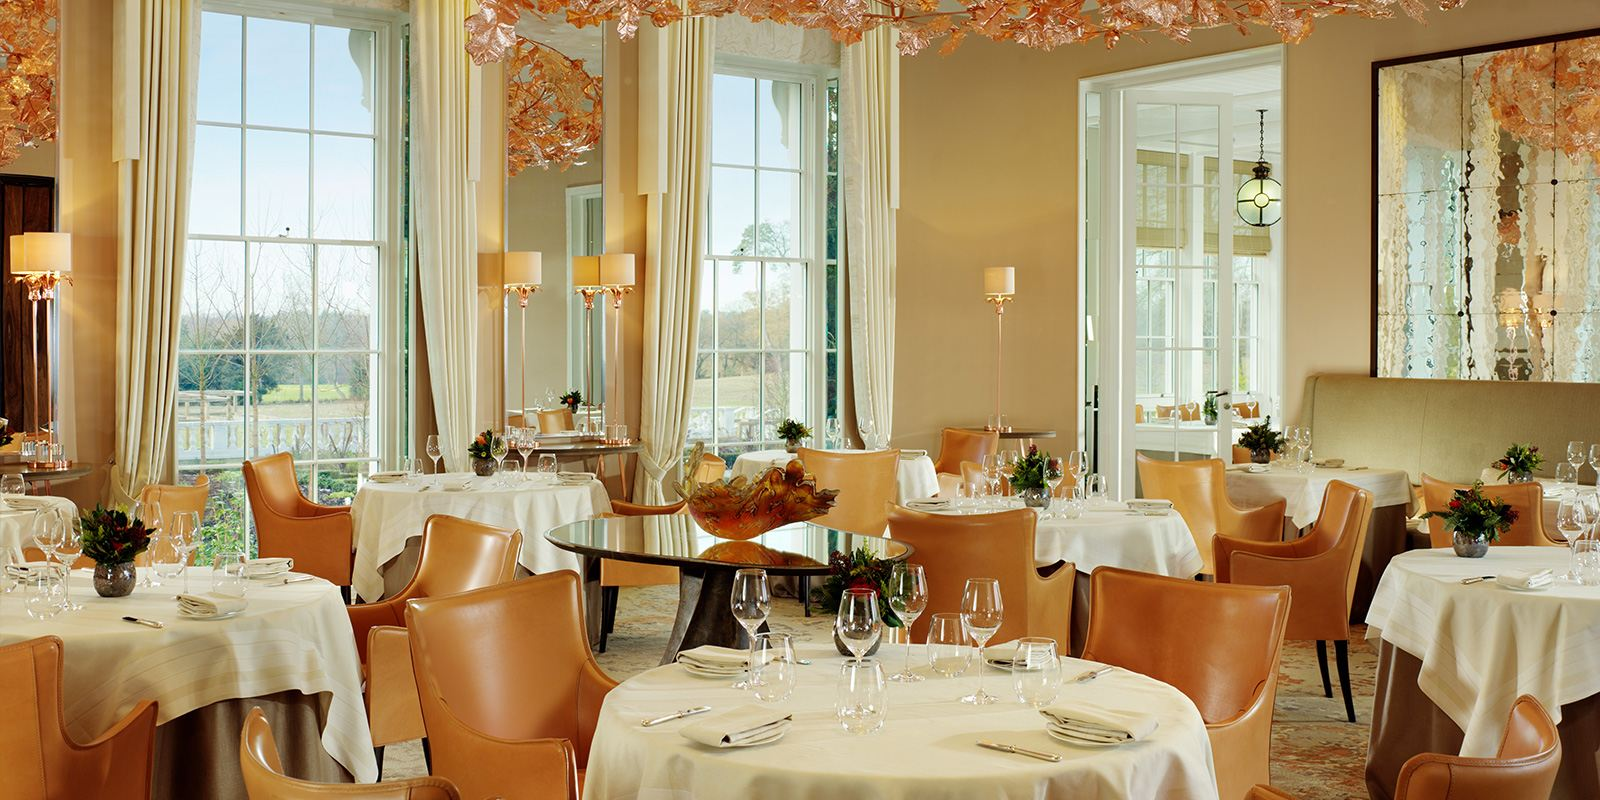 Restaurant Coworth Park, with its relaxed elegance and contemporary setting overlooking parkland views, puts its own modern spin on classic British dishes.